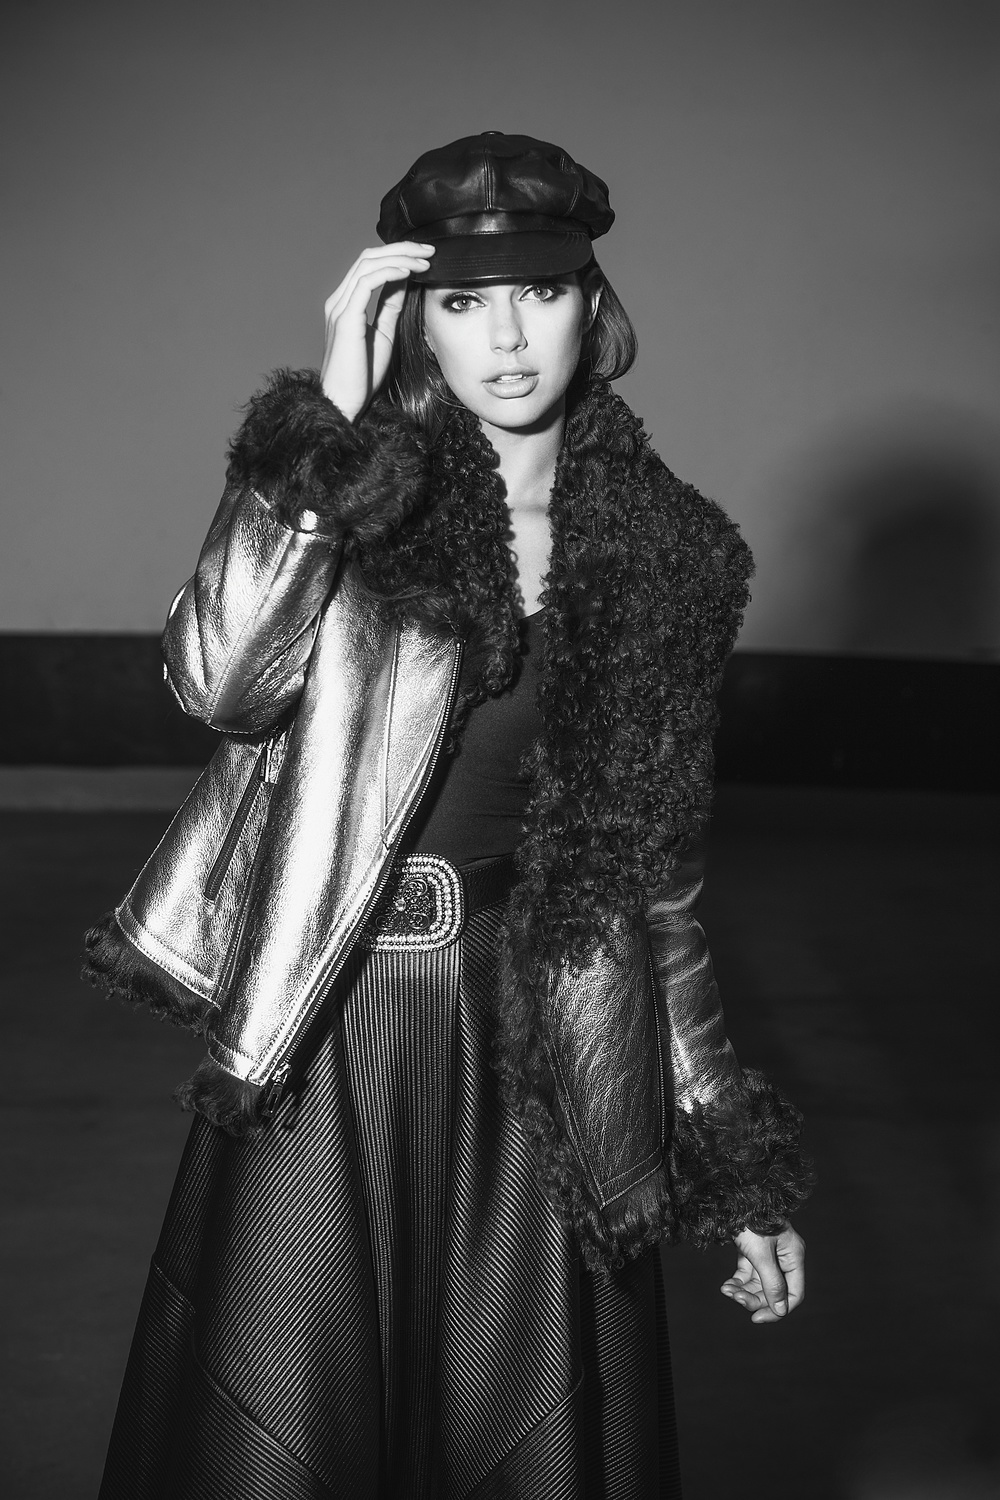 Shearling 2015 Carol Gallacher designer for HiSO, Styling: Joanna Plisko, Photography: Mike Lewis, Hair and Makeup: Taca Ozawa